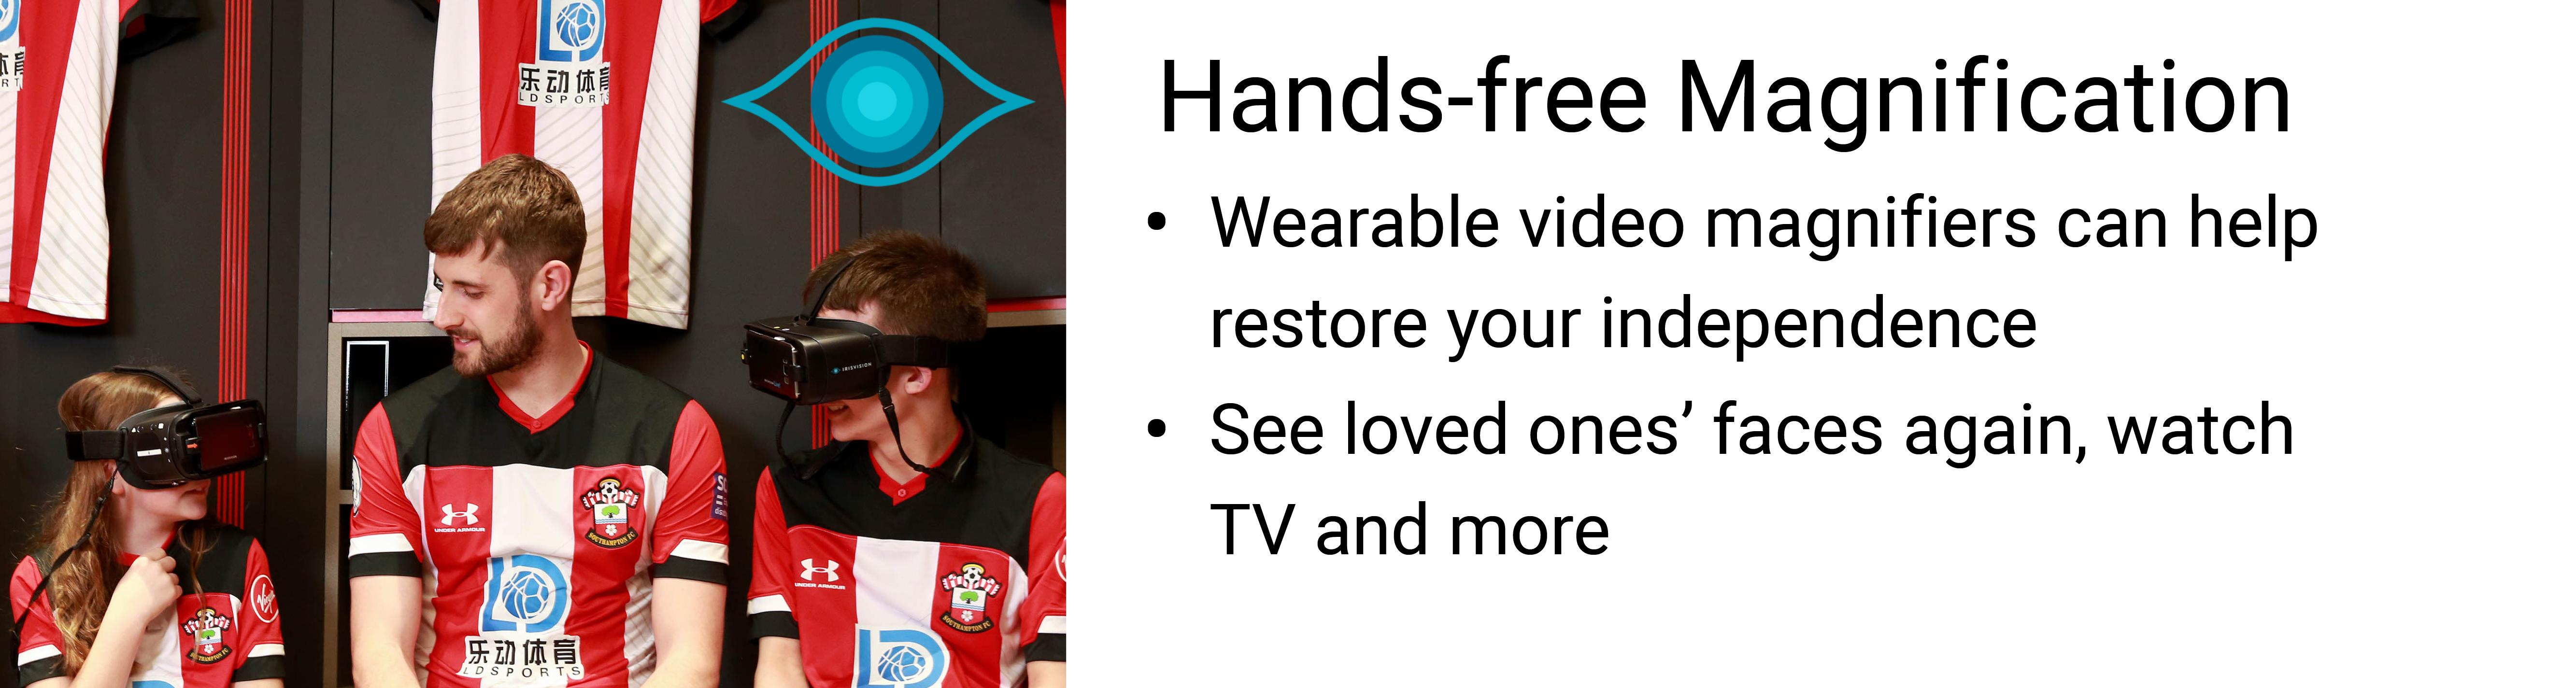 Wearable video magnifiers can help to restore your independence. Use it to see your loved ones' faces again, watch TV and more. Click here for more information.